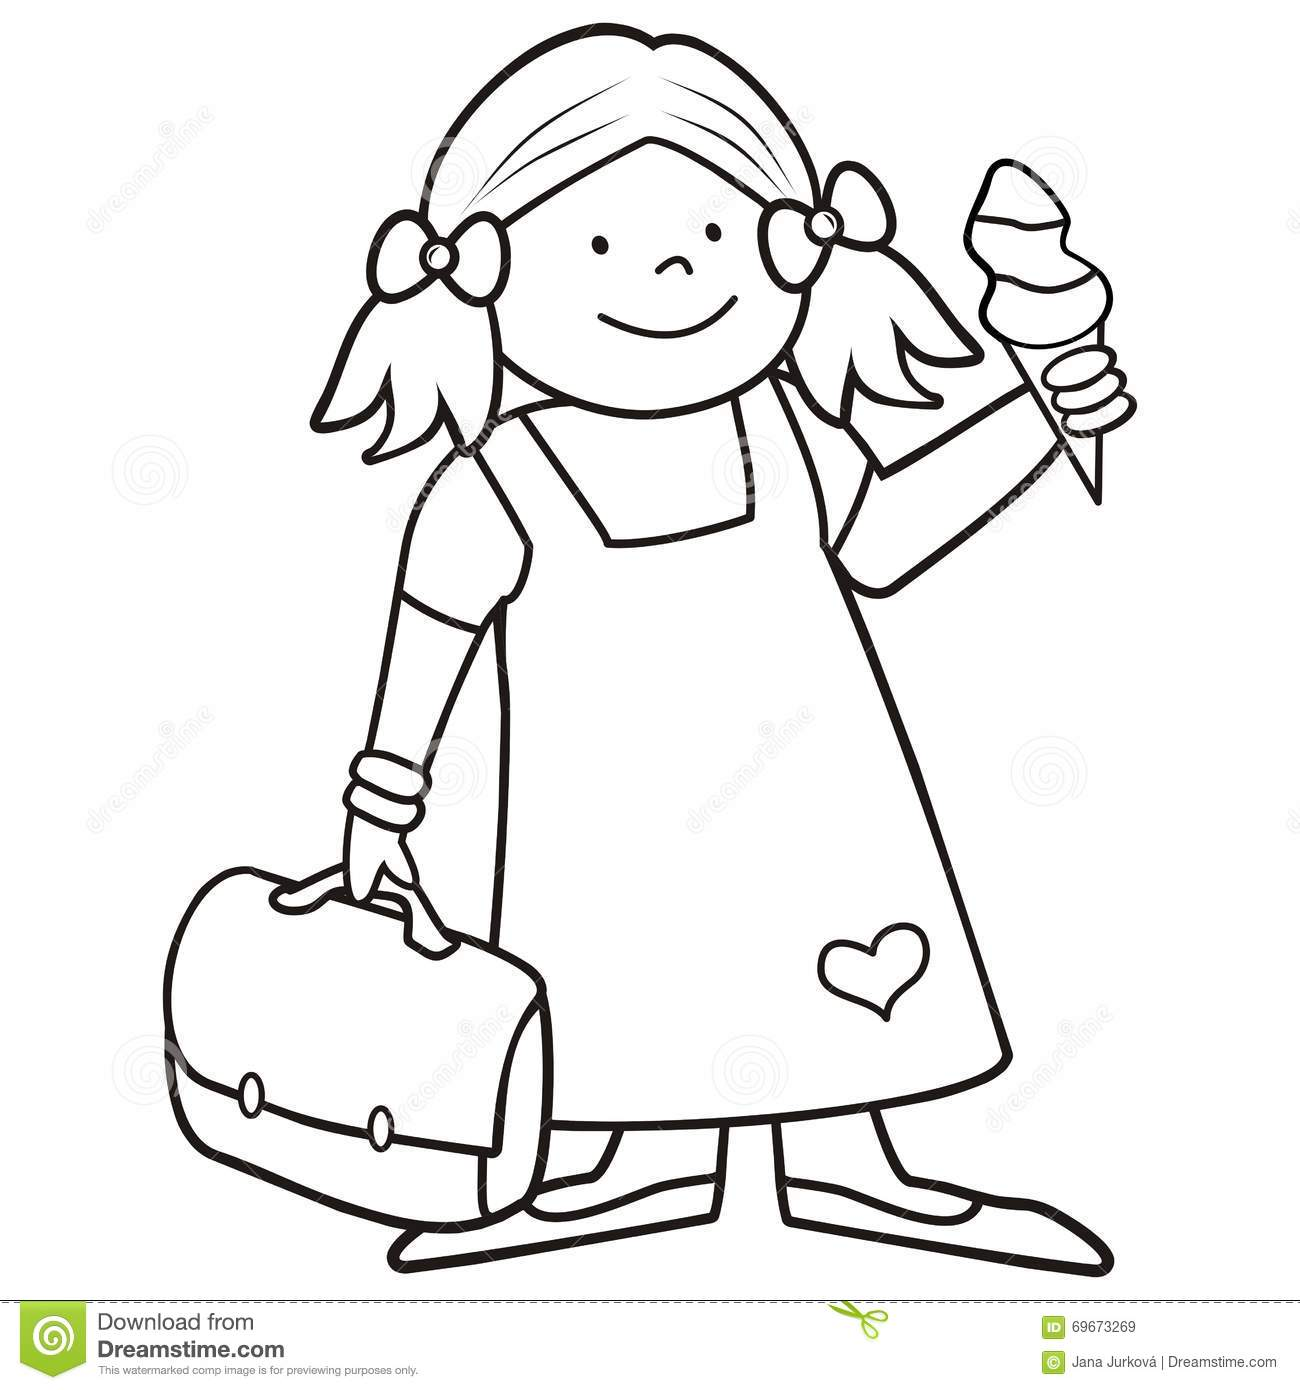 girl and schoobag coloring book stock vector illustration of